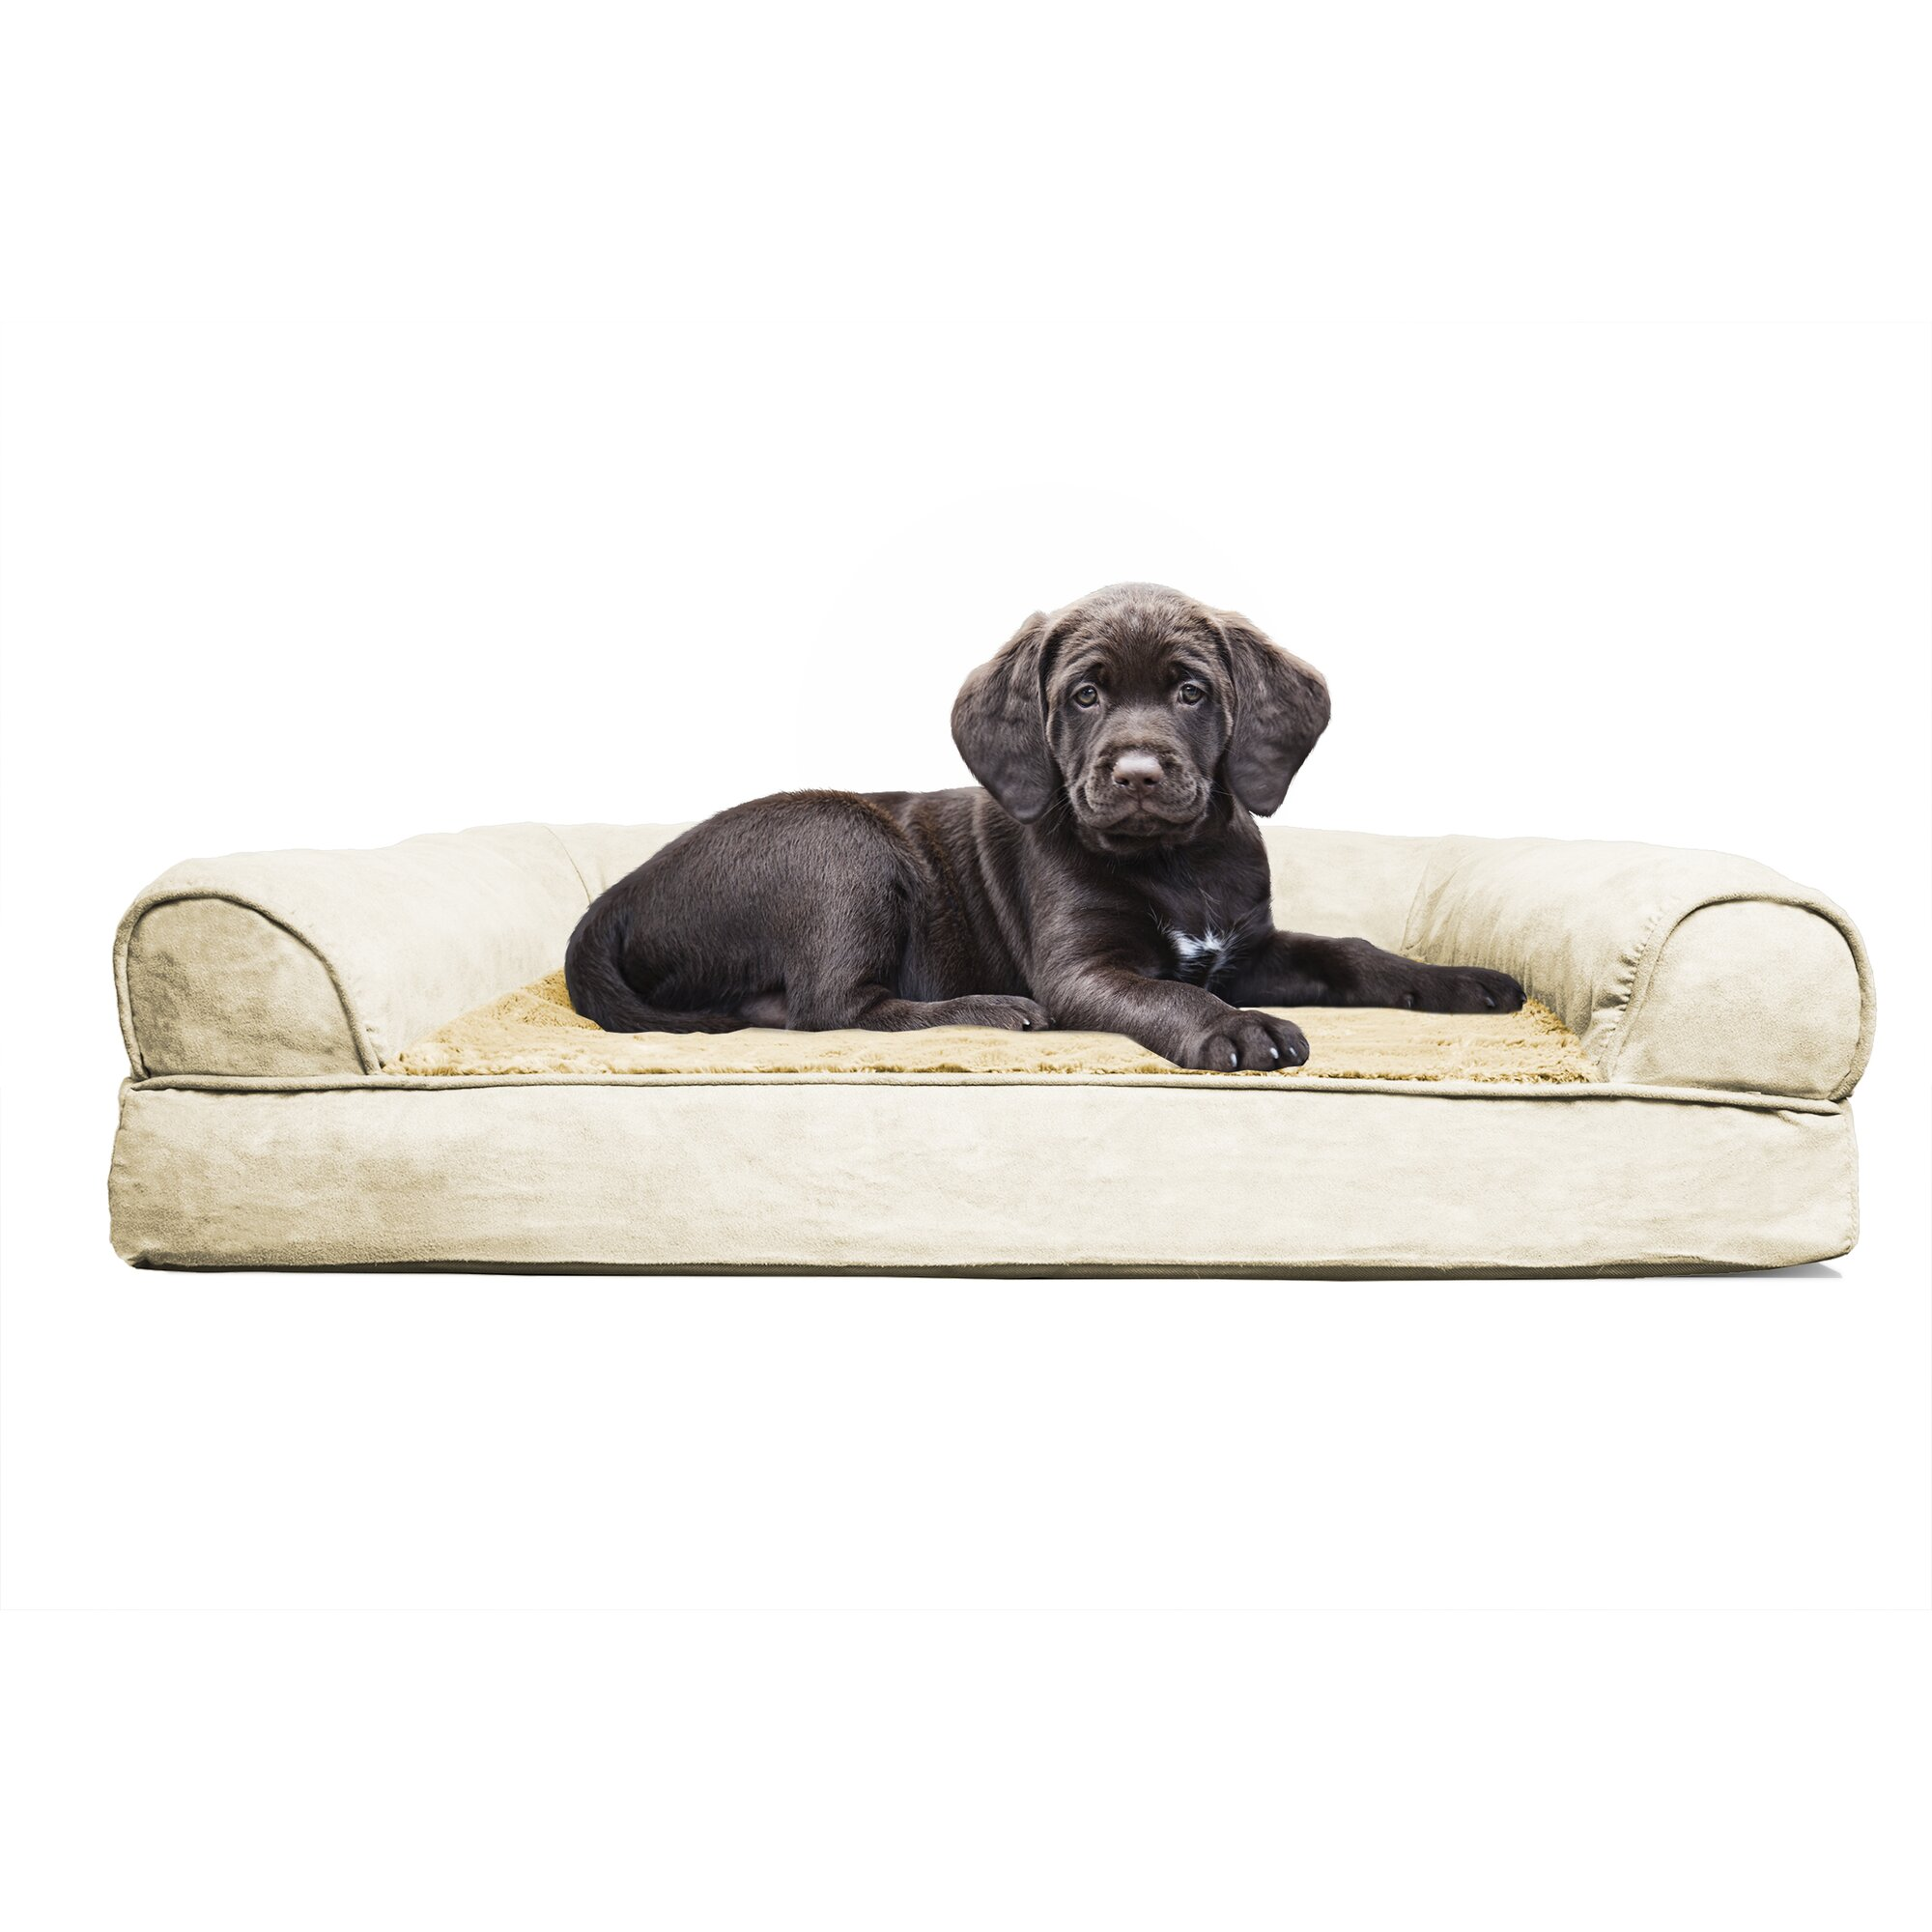 Furhaven Furhaven Plush Orthopedic Sofa Style Dog Bed Reviews